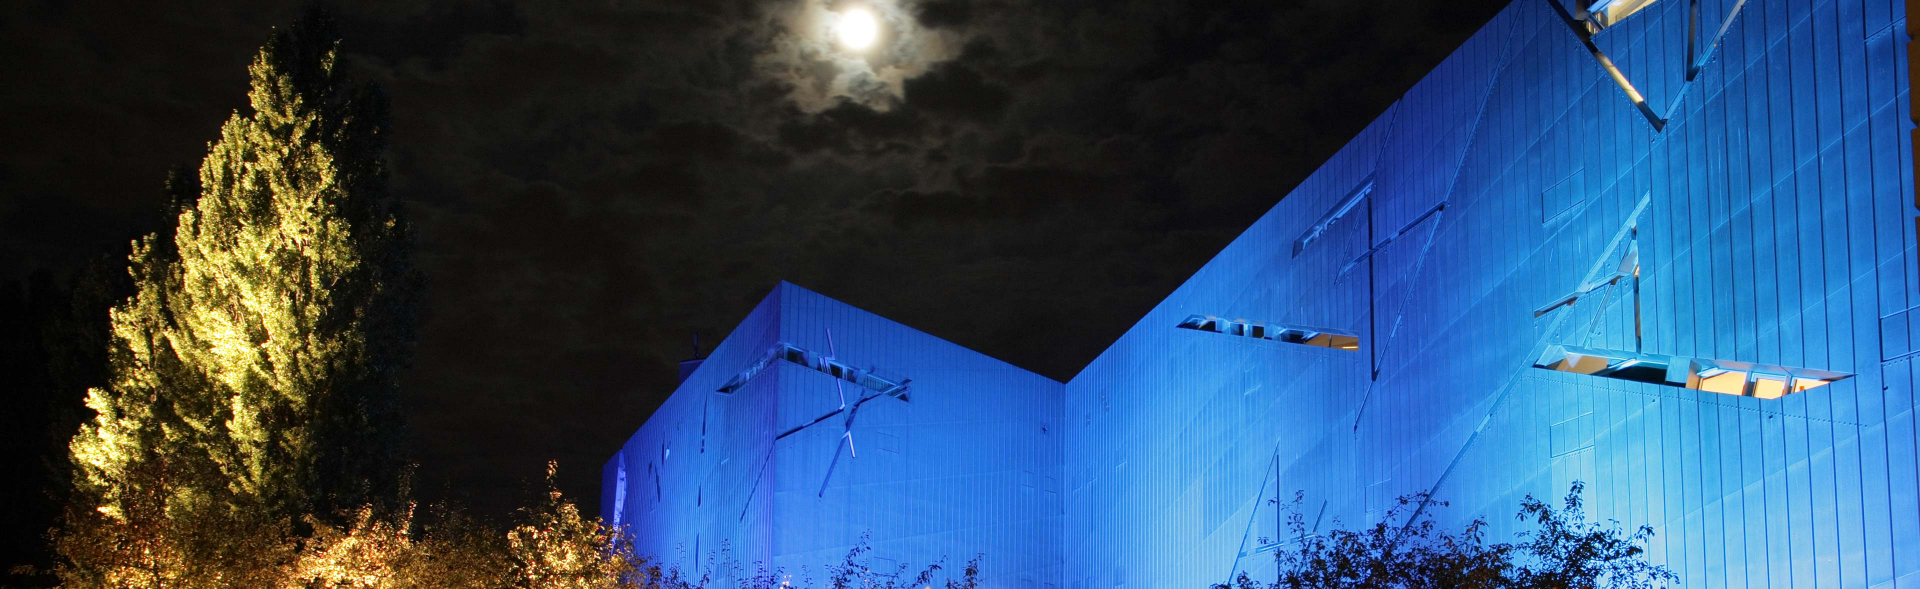 Libeskind Buildig in blue light at night, during full moon